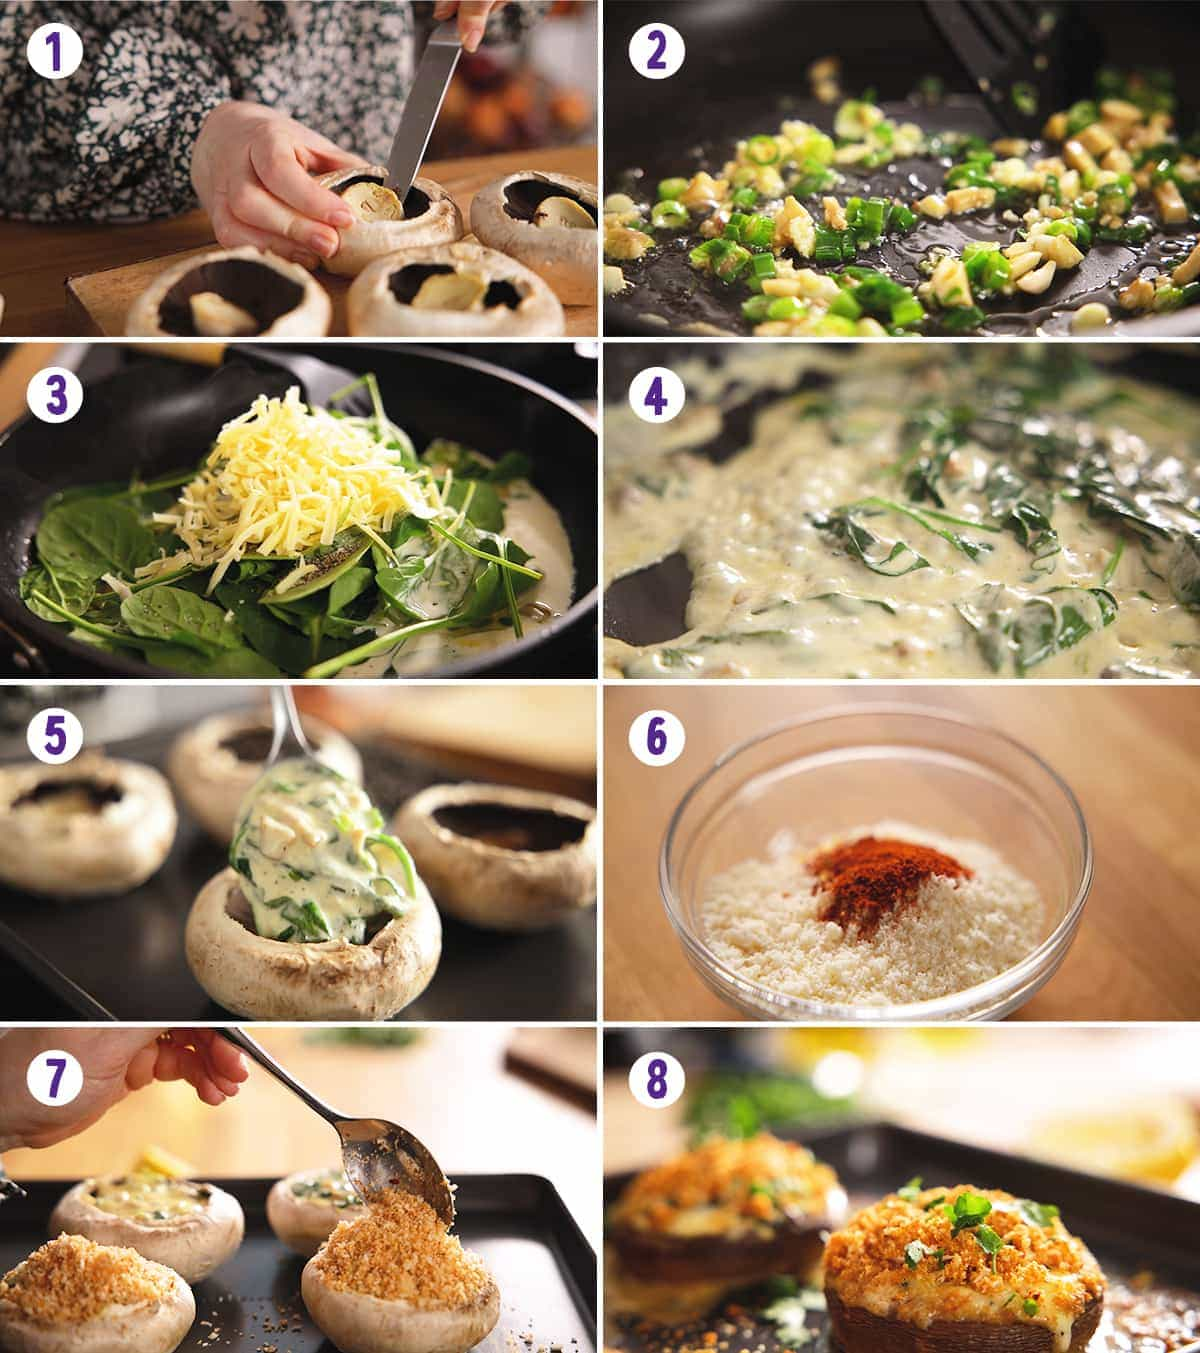 8 image collage showing how to make stuffed mushrooms